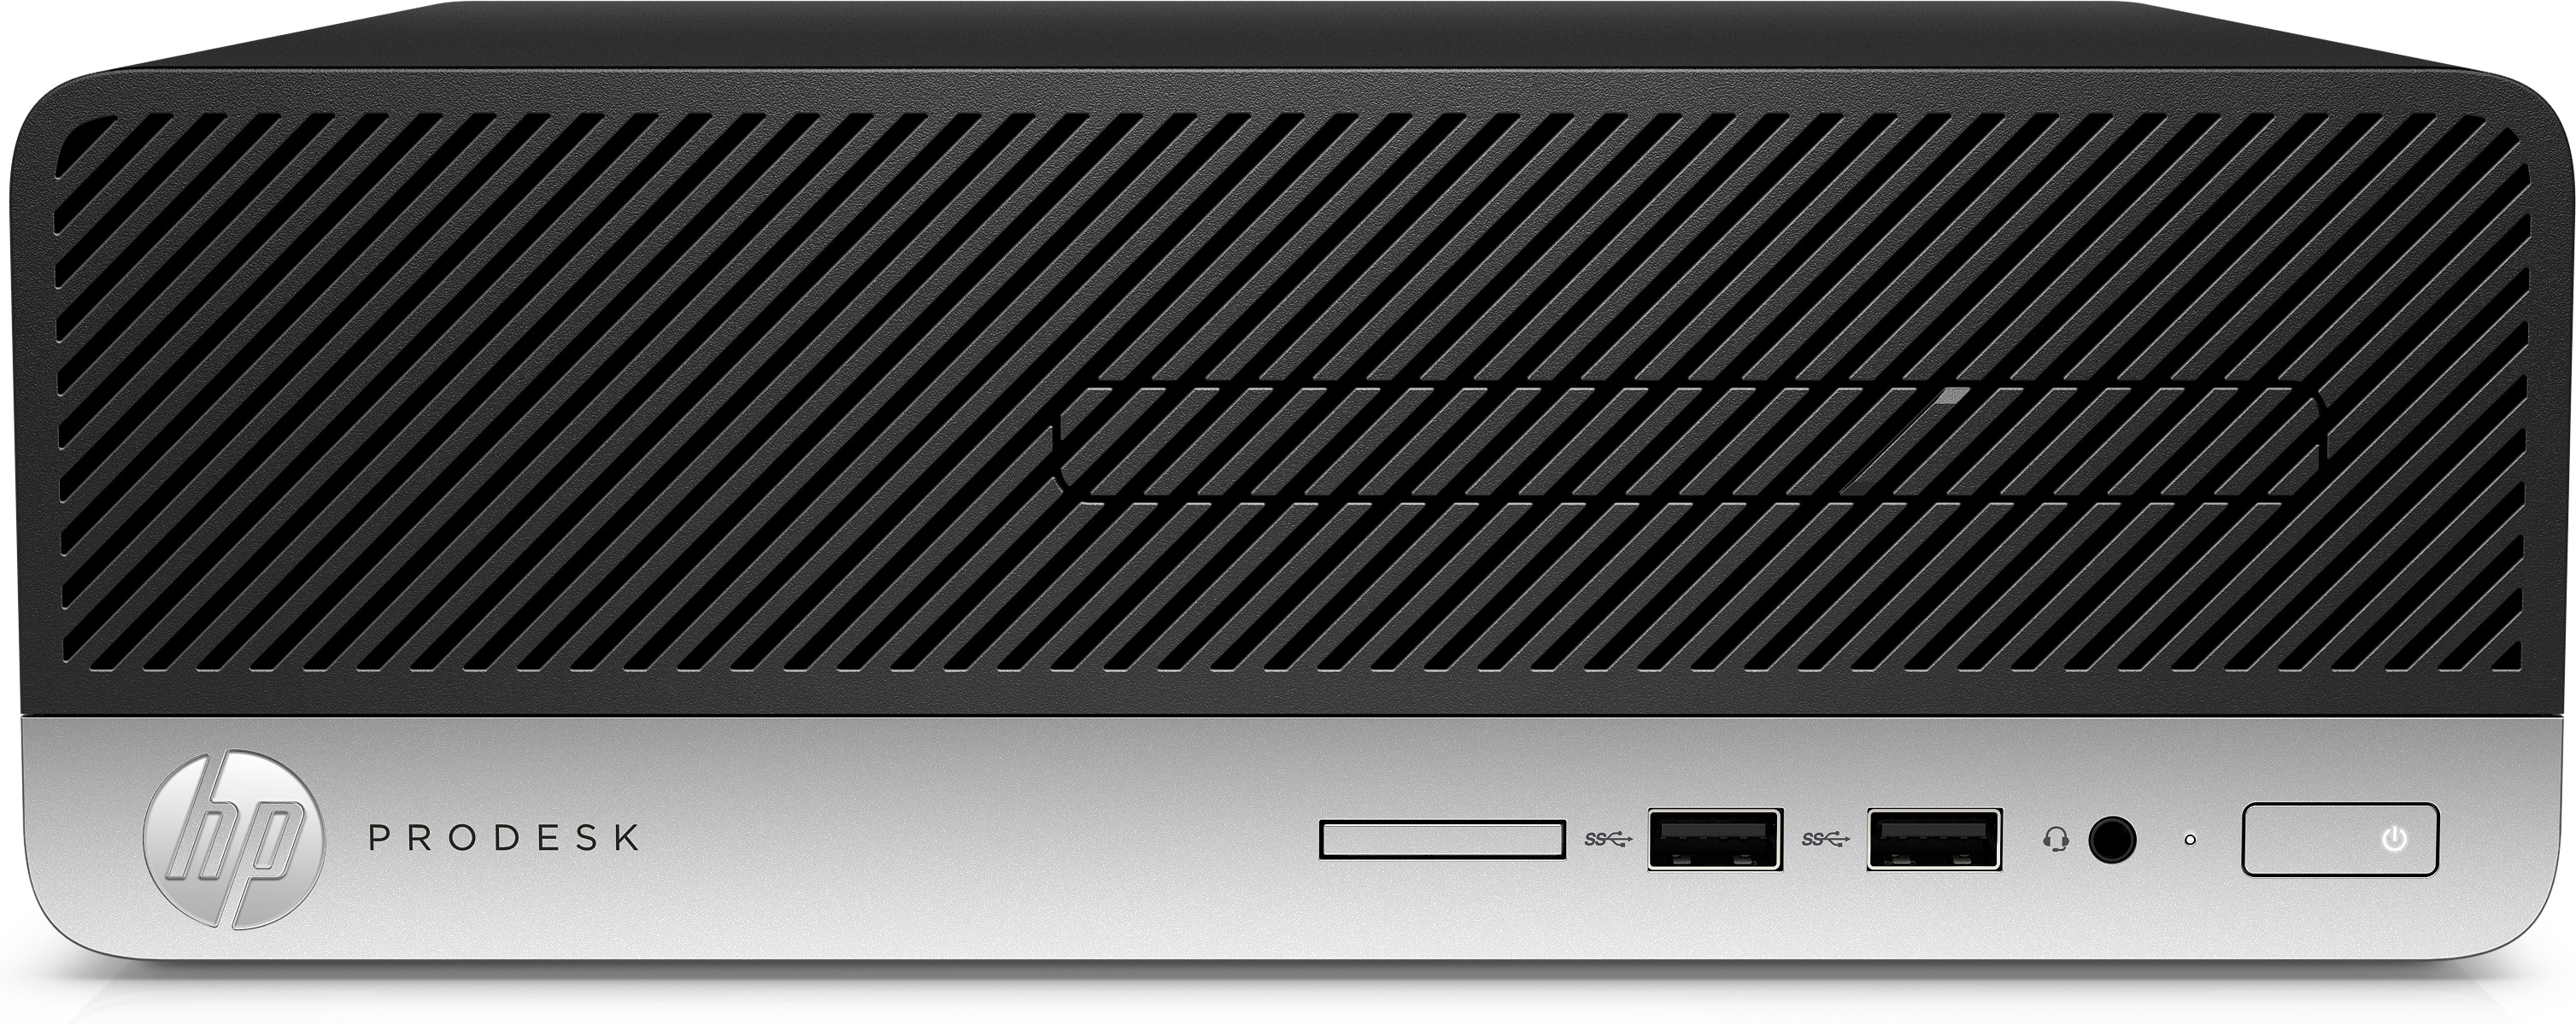 HP ProDesk 400 G6 - Thin Client - Core i5 3 GHz - RAM: 8 GB DDR4 - HDD: 256 GB NVMe - UHD Graphics 600